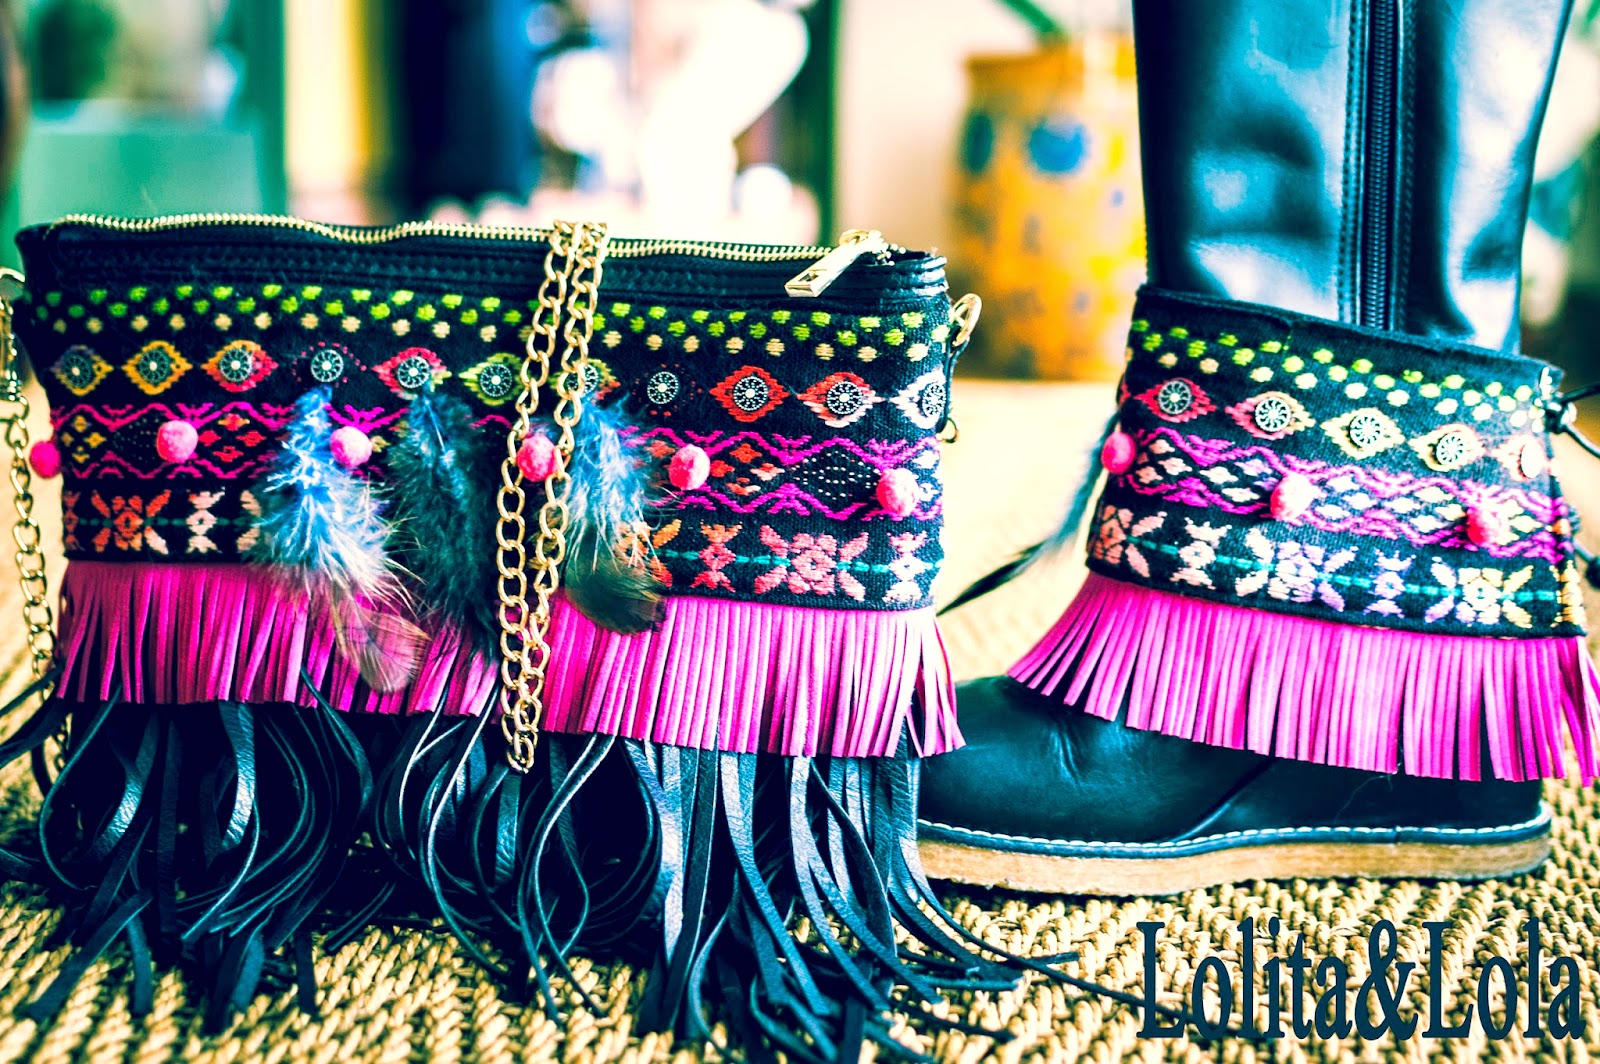 cover boots and bag indie. Cubrebotas y bolso a juego indie